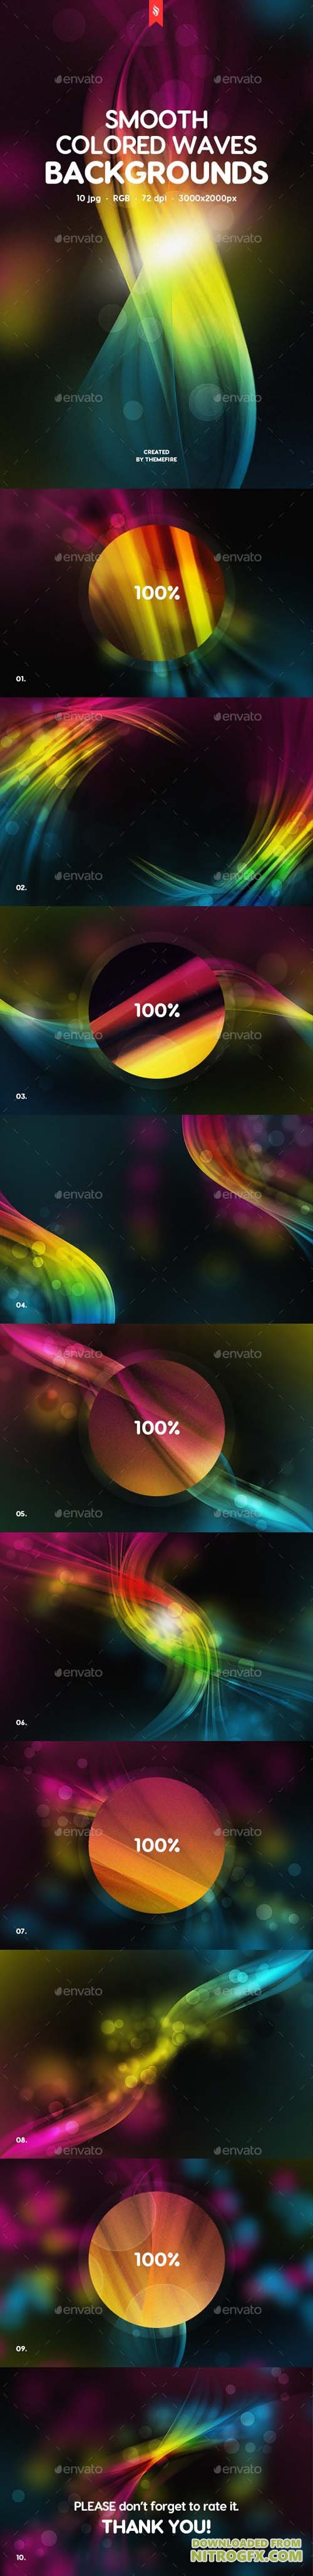 Smooth Colored Waves Backgrounds 7871908